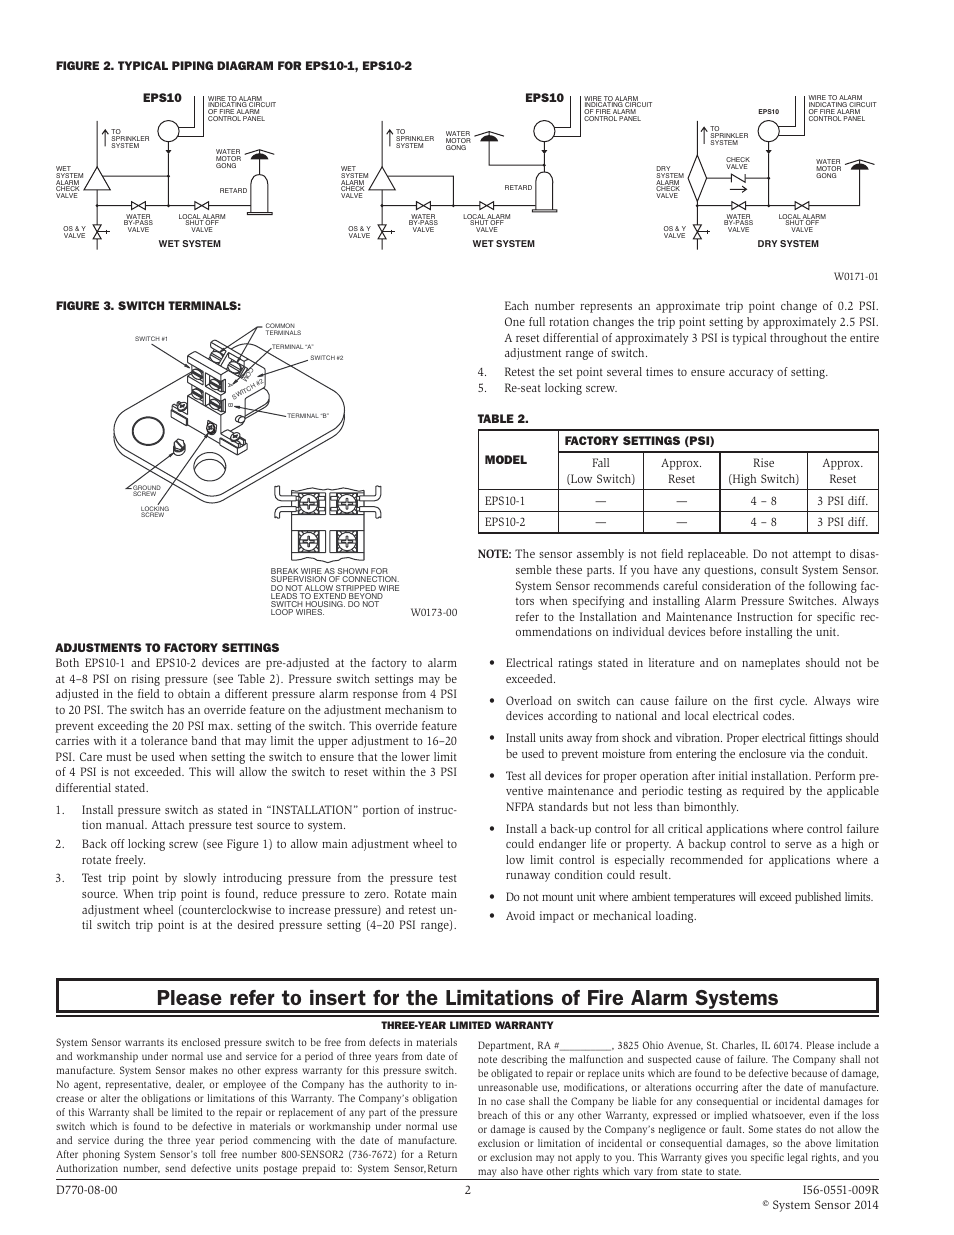 system sensor eps10 1 and eps10 2 page2 figure 3 switch terminals, eps10 system sensor eps10 1 and 5R55E Transmission Wiring Diagram at bakdesigns.co